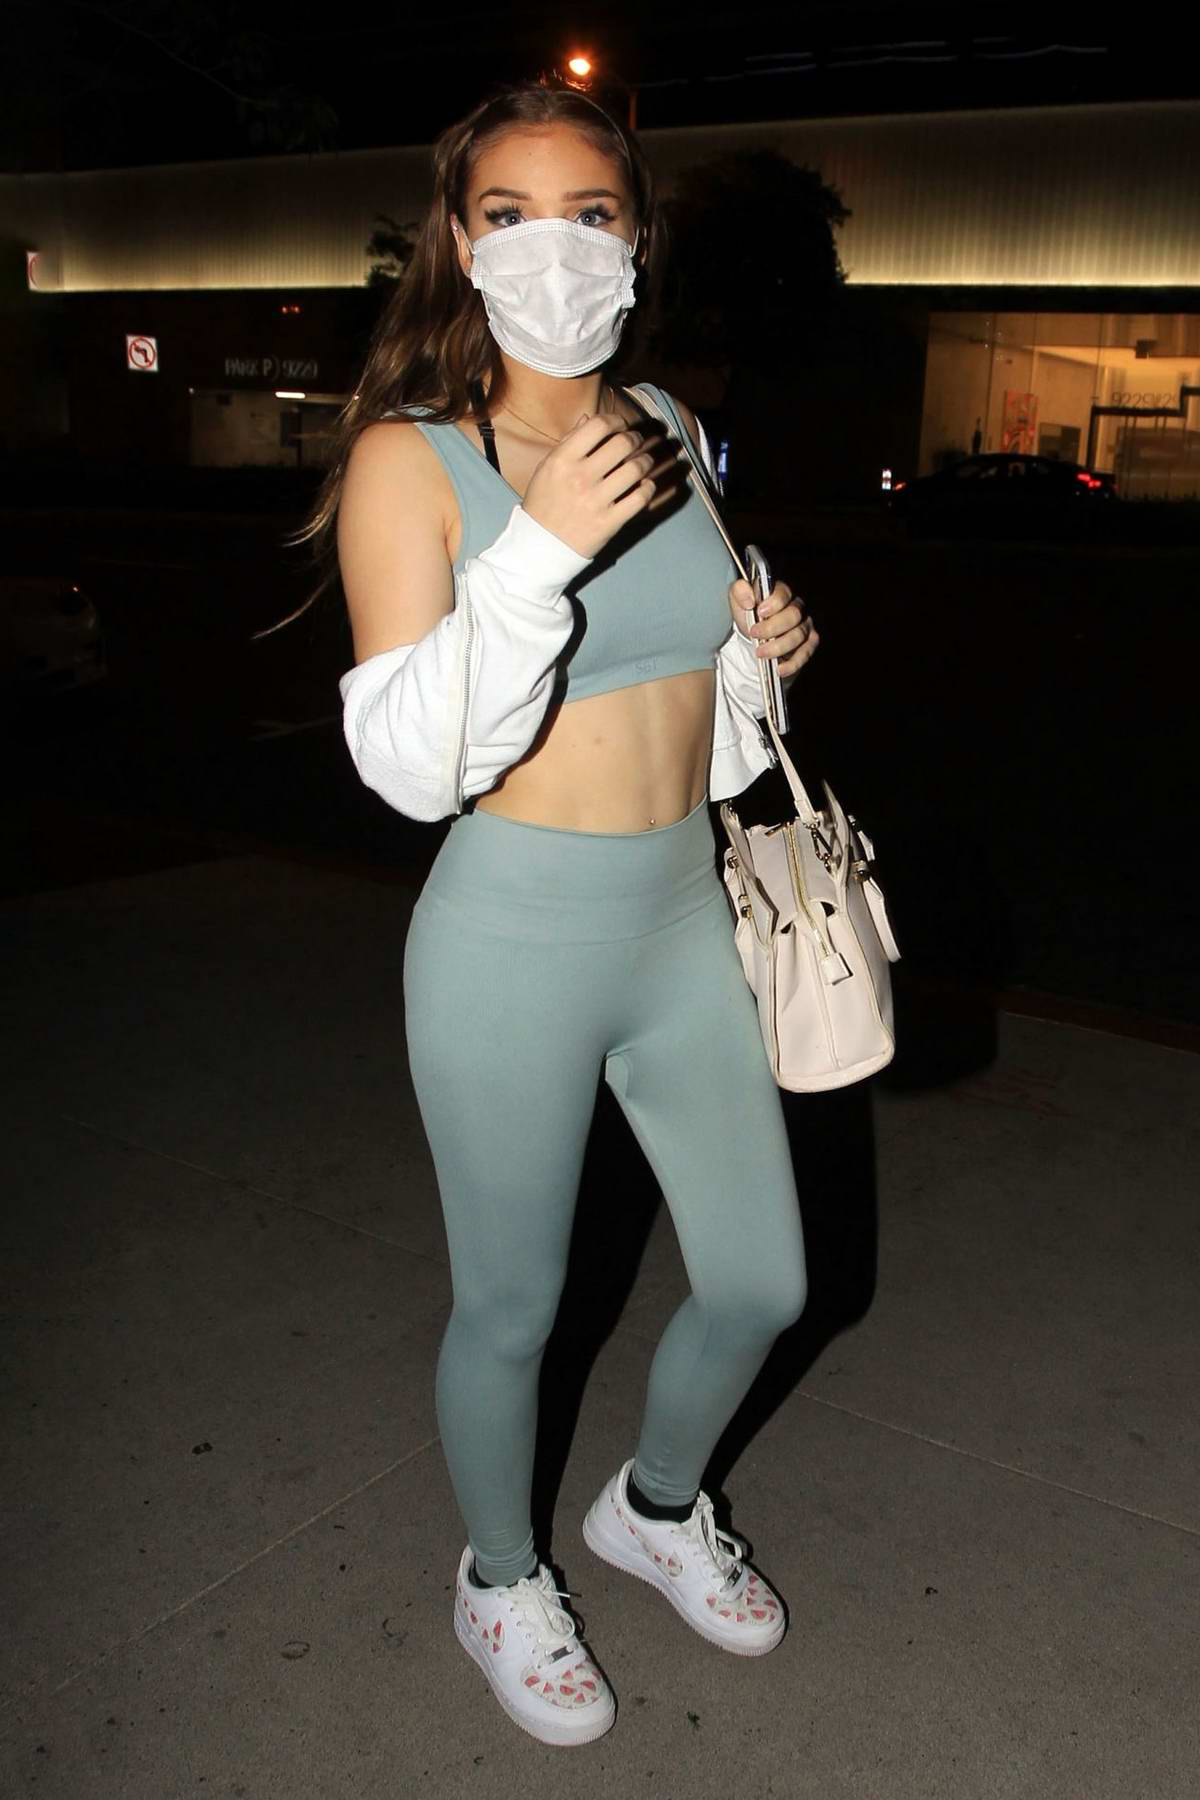 Brighton Sharbino shows off her toned abs in matching workout top and leggings during a night out in Los Angeles